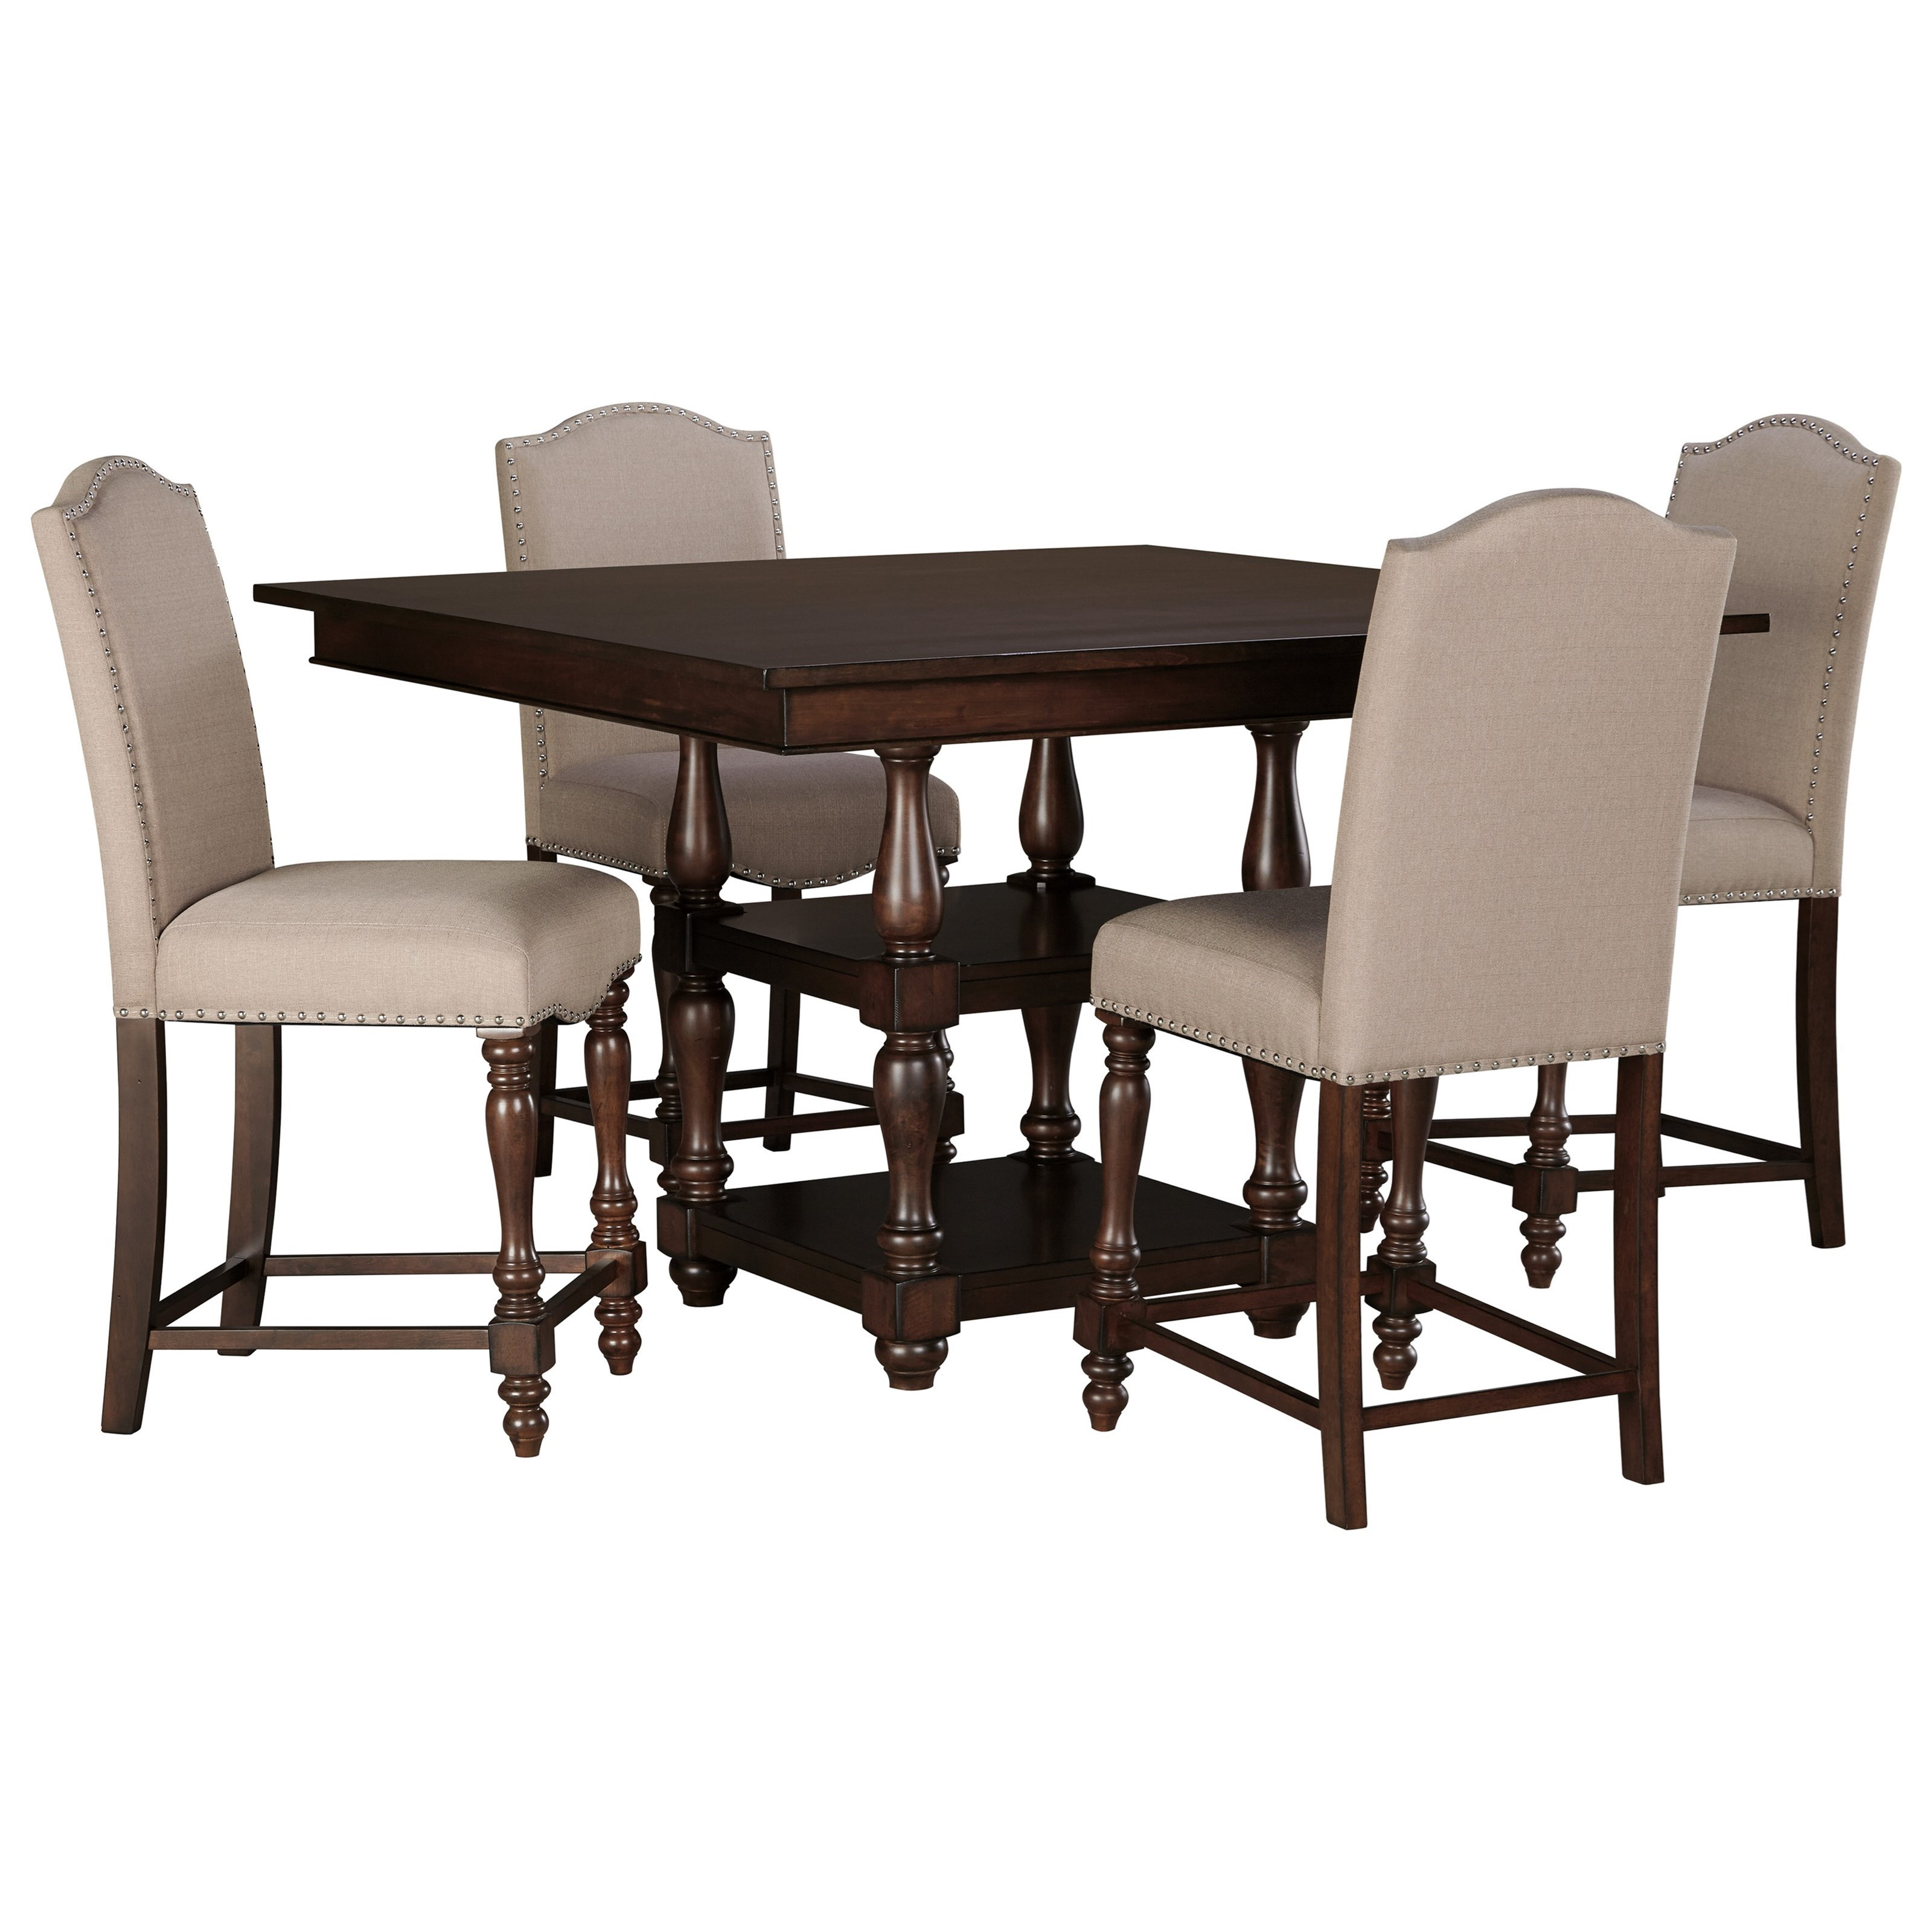 Signature design by ashley baxenburg 5 piece square dining for Square dinette sets